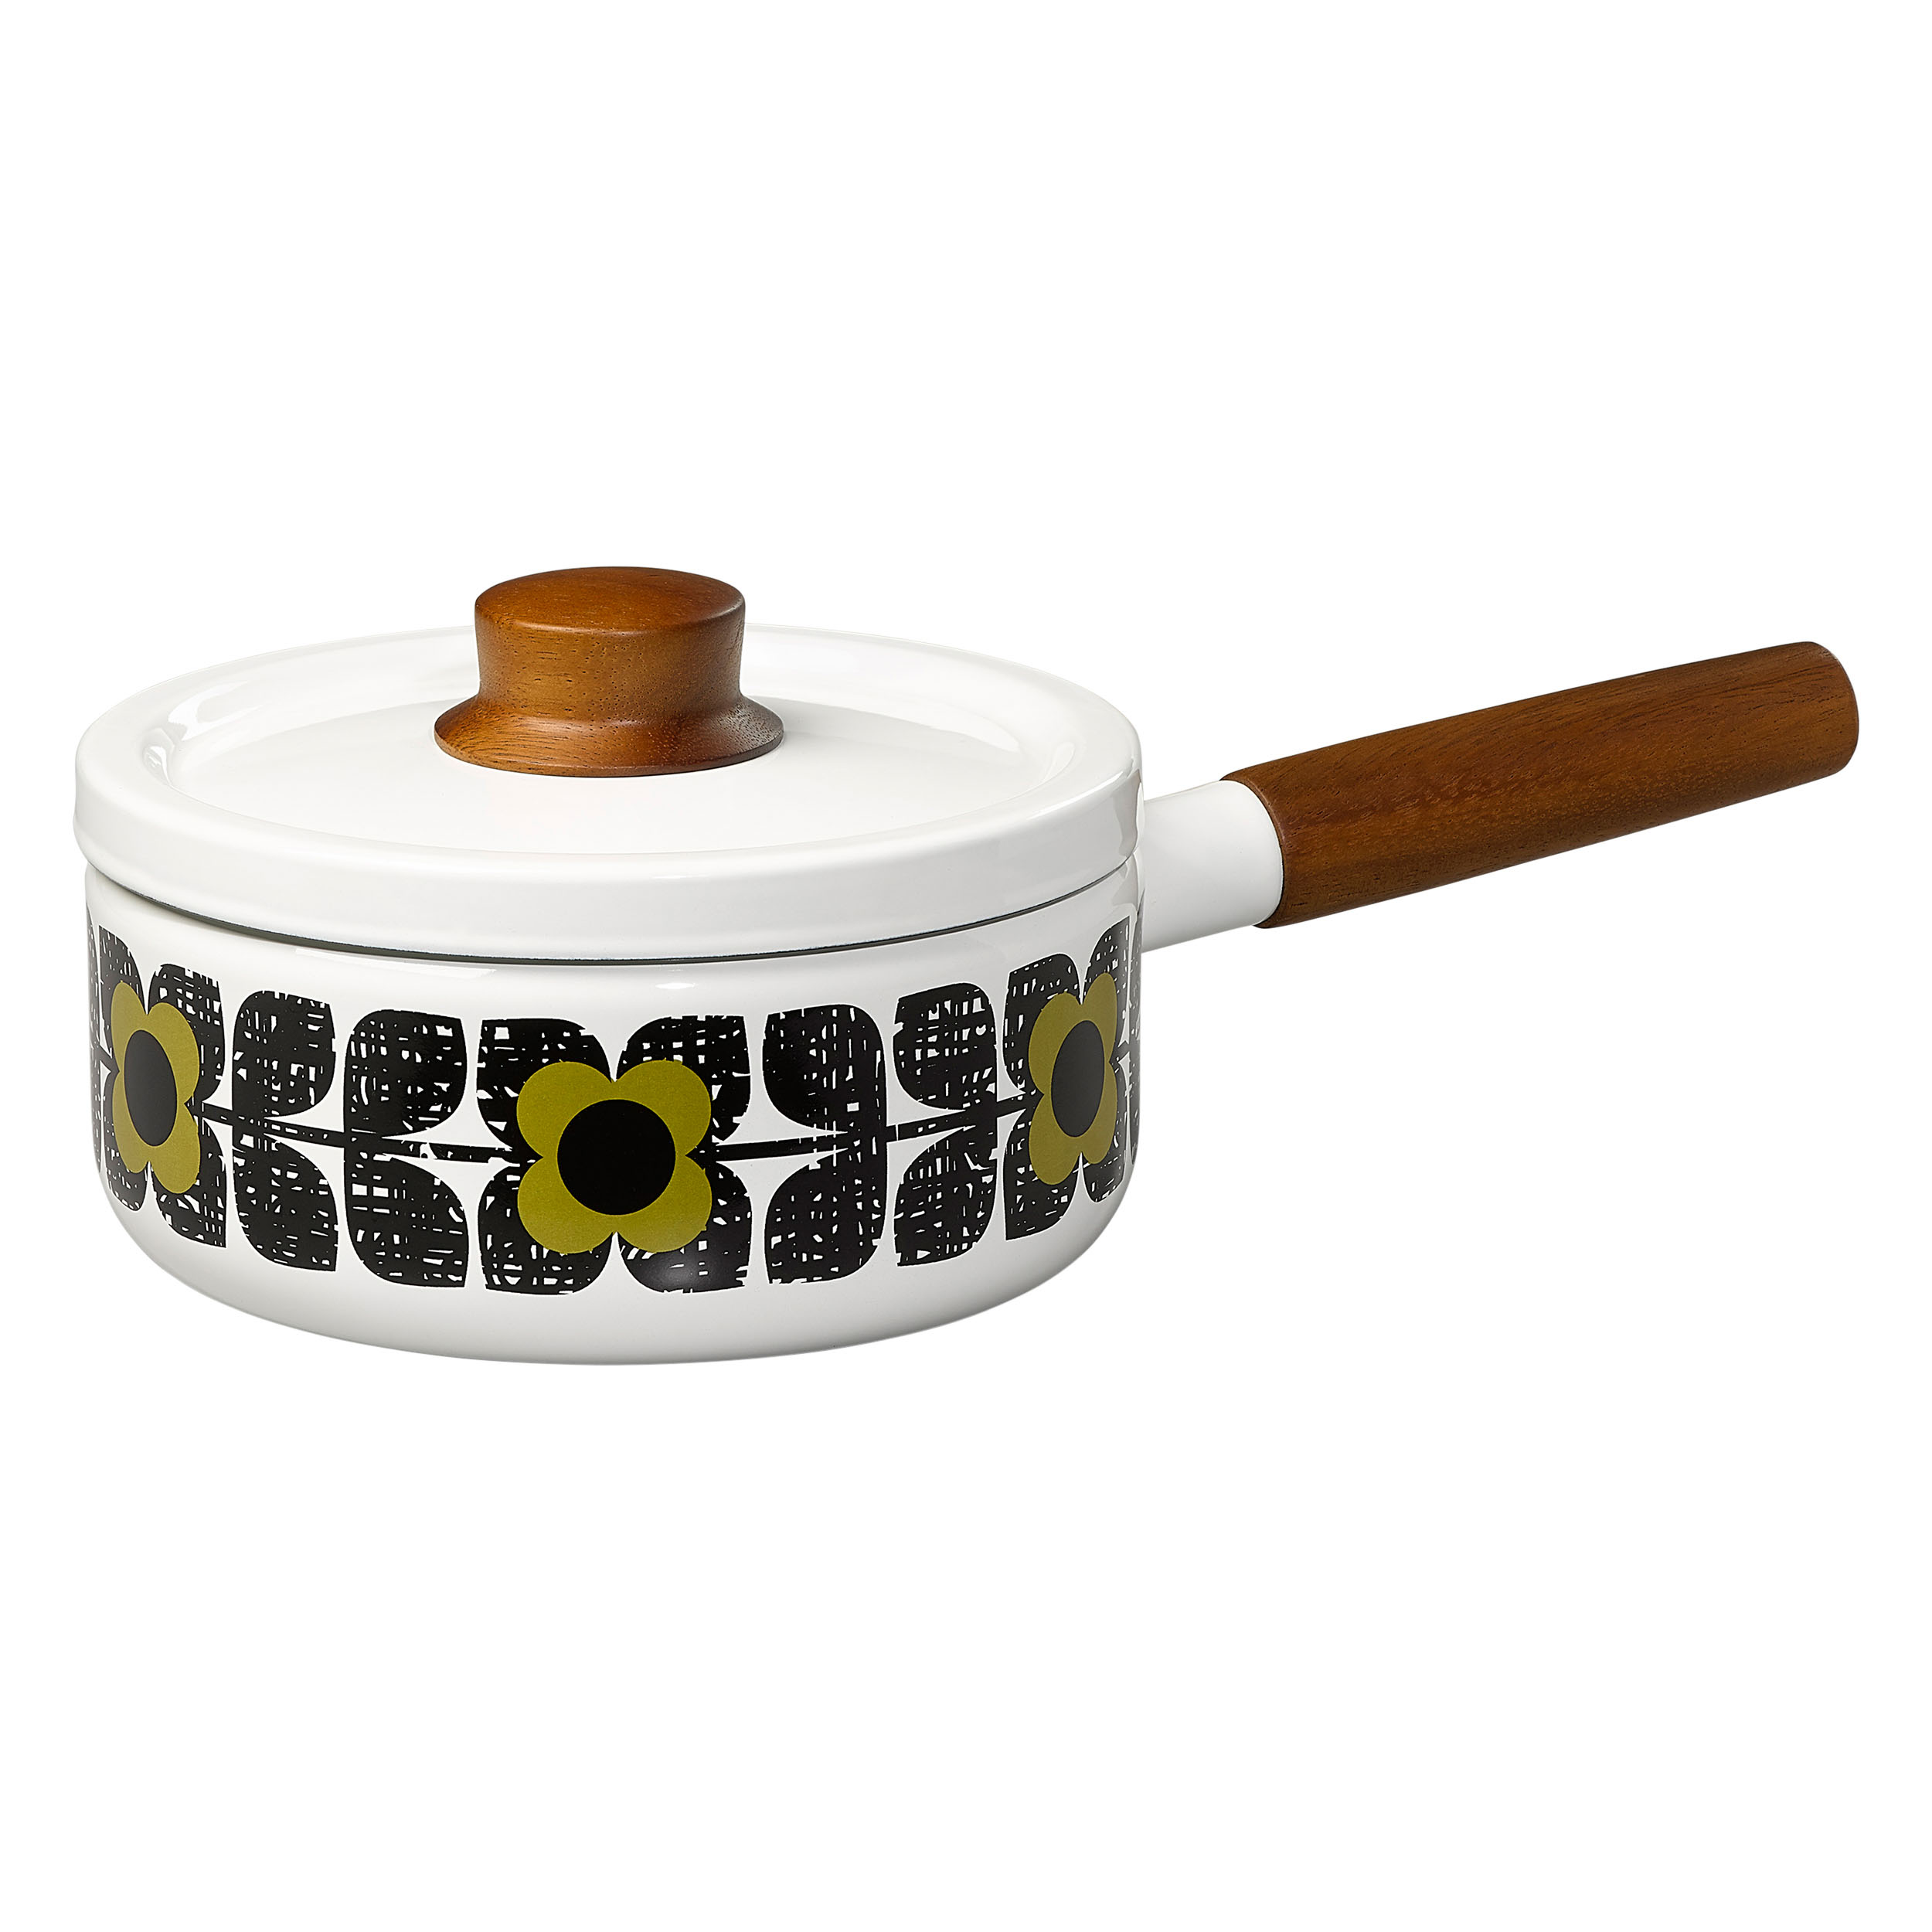 Enamel Saucepan, Scribble Square Flower, Seagrass